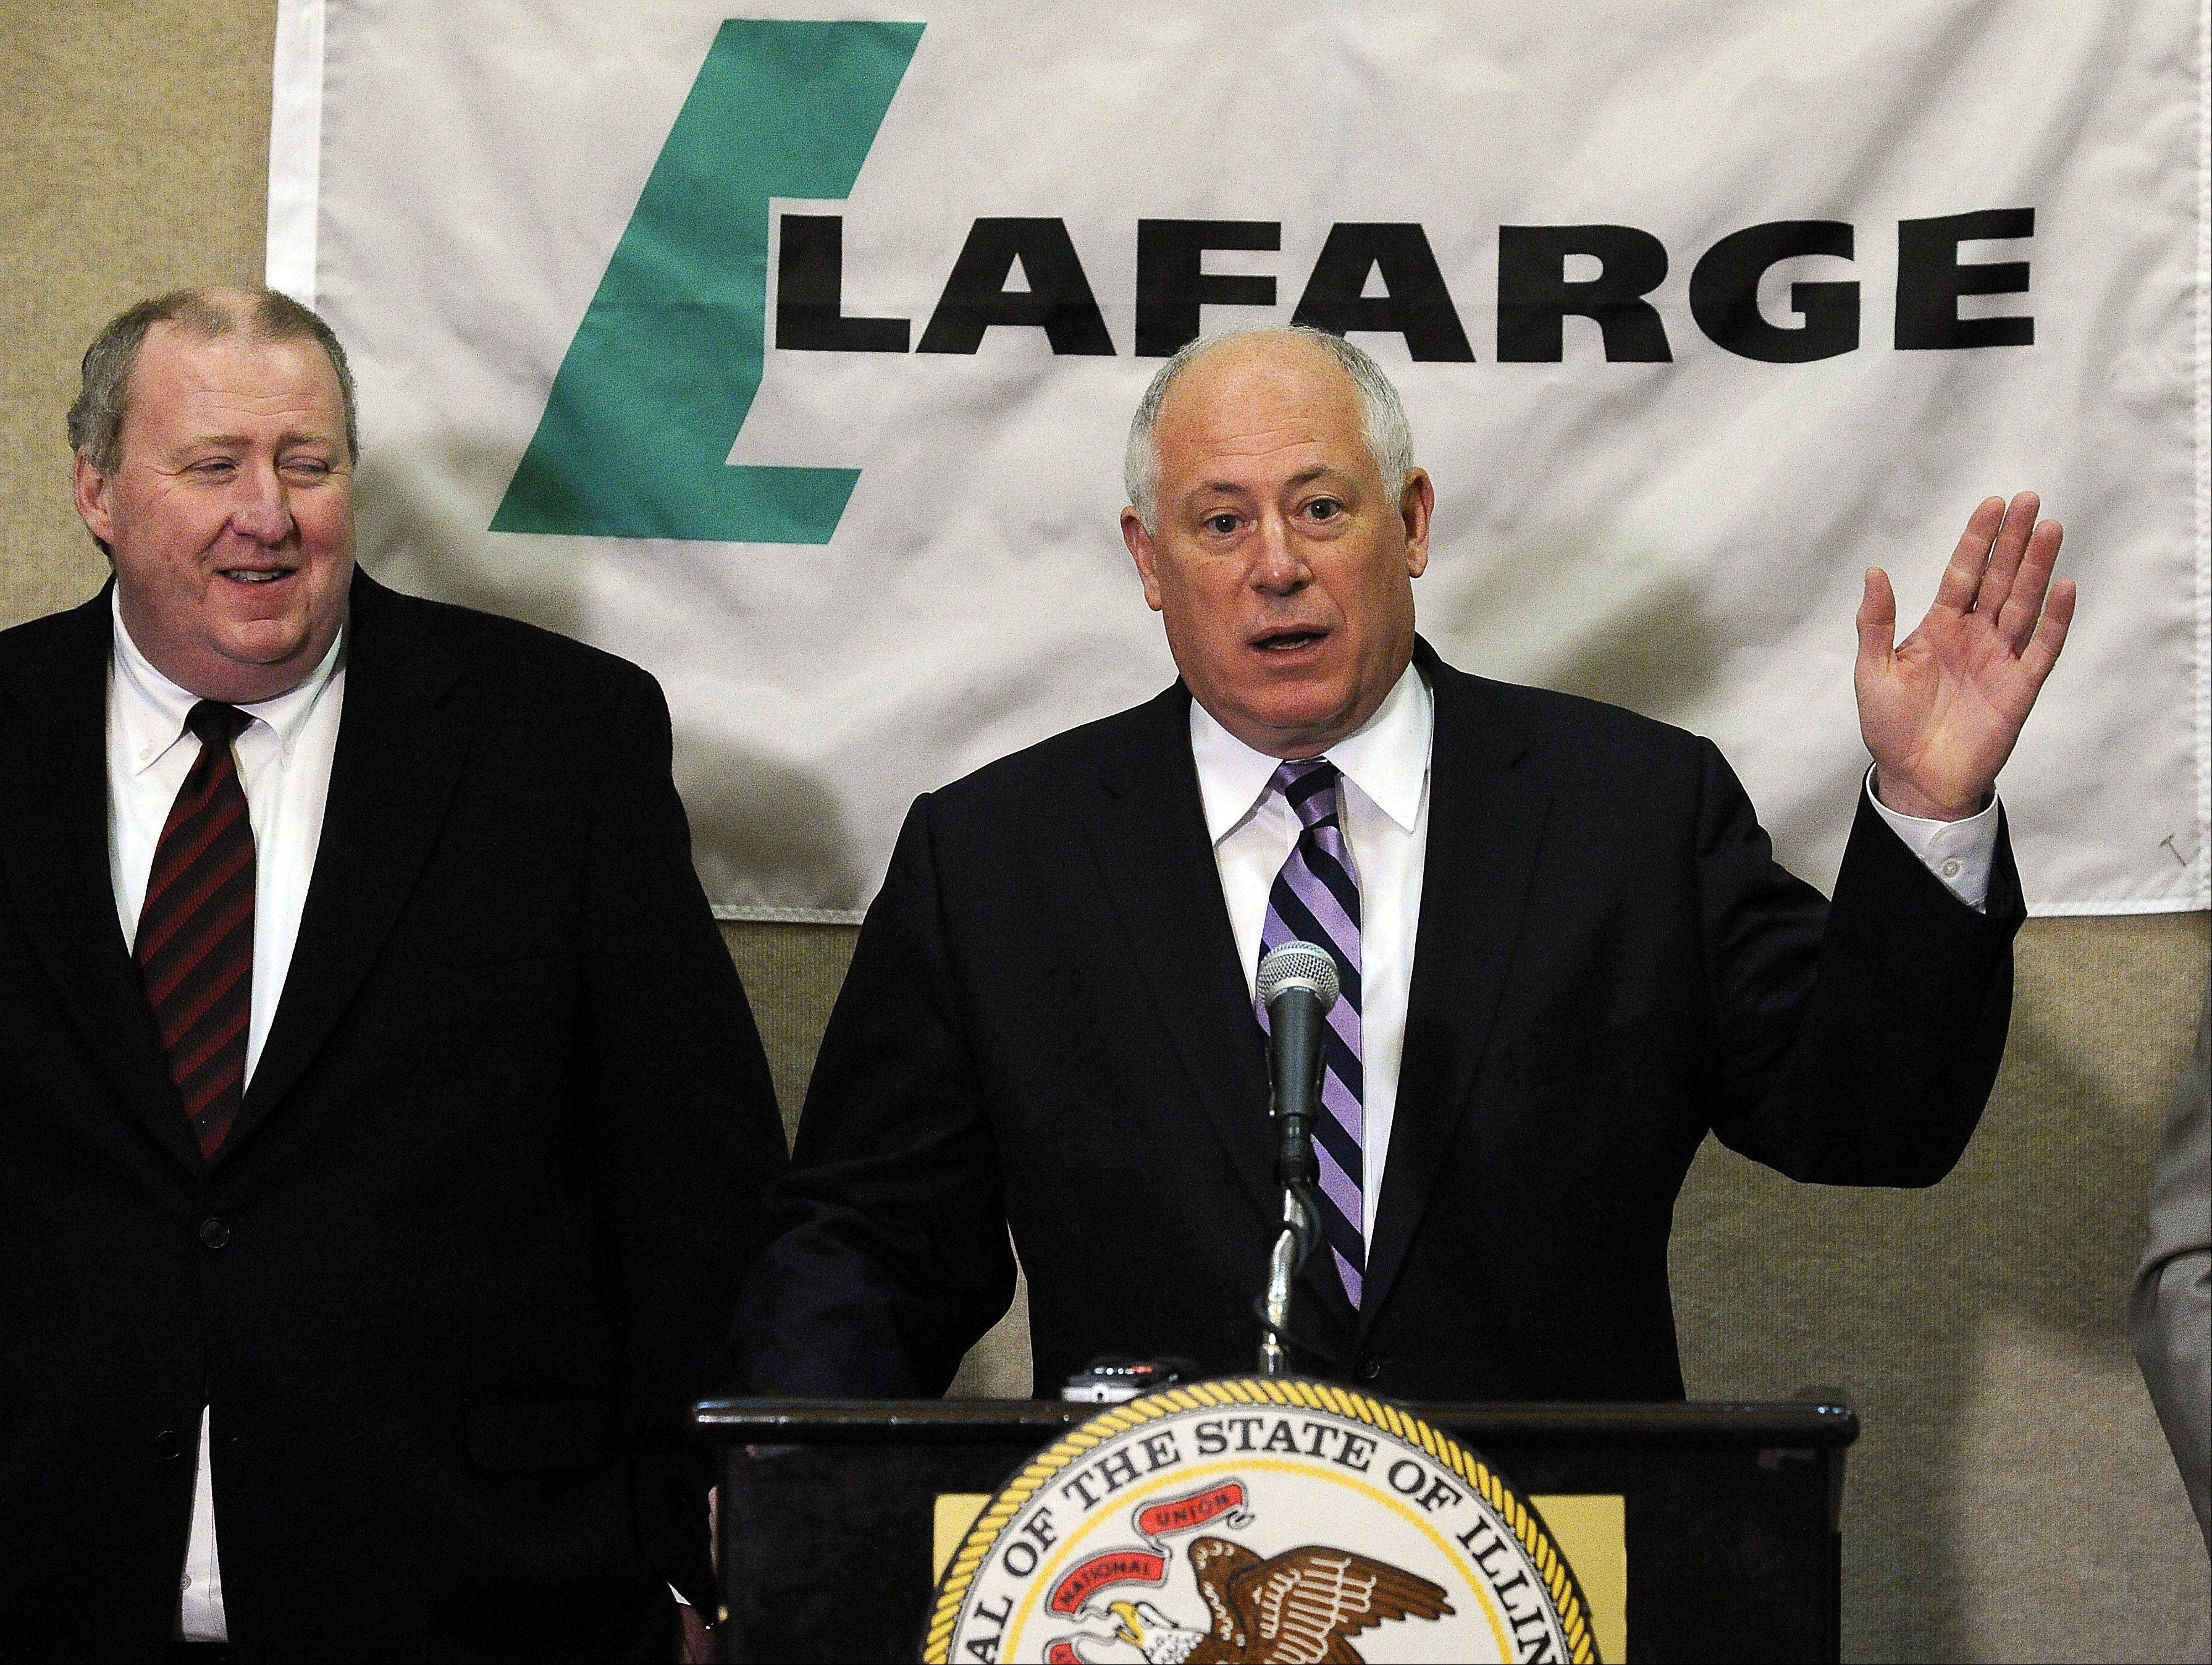 Governor Pat Quinn welcomed Lafarge North America to Illinois as company CEO John Stull looks on.